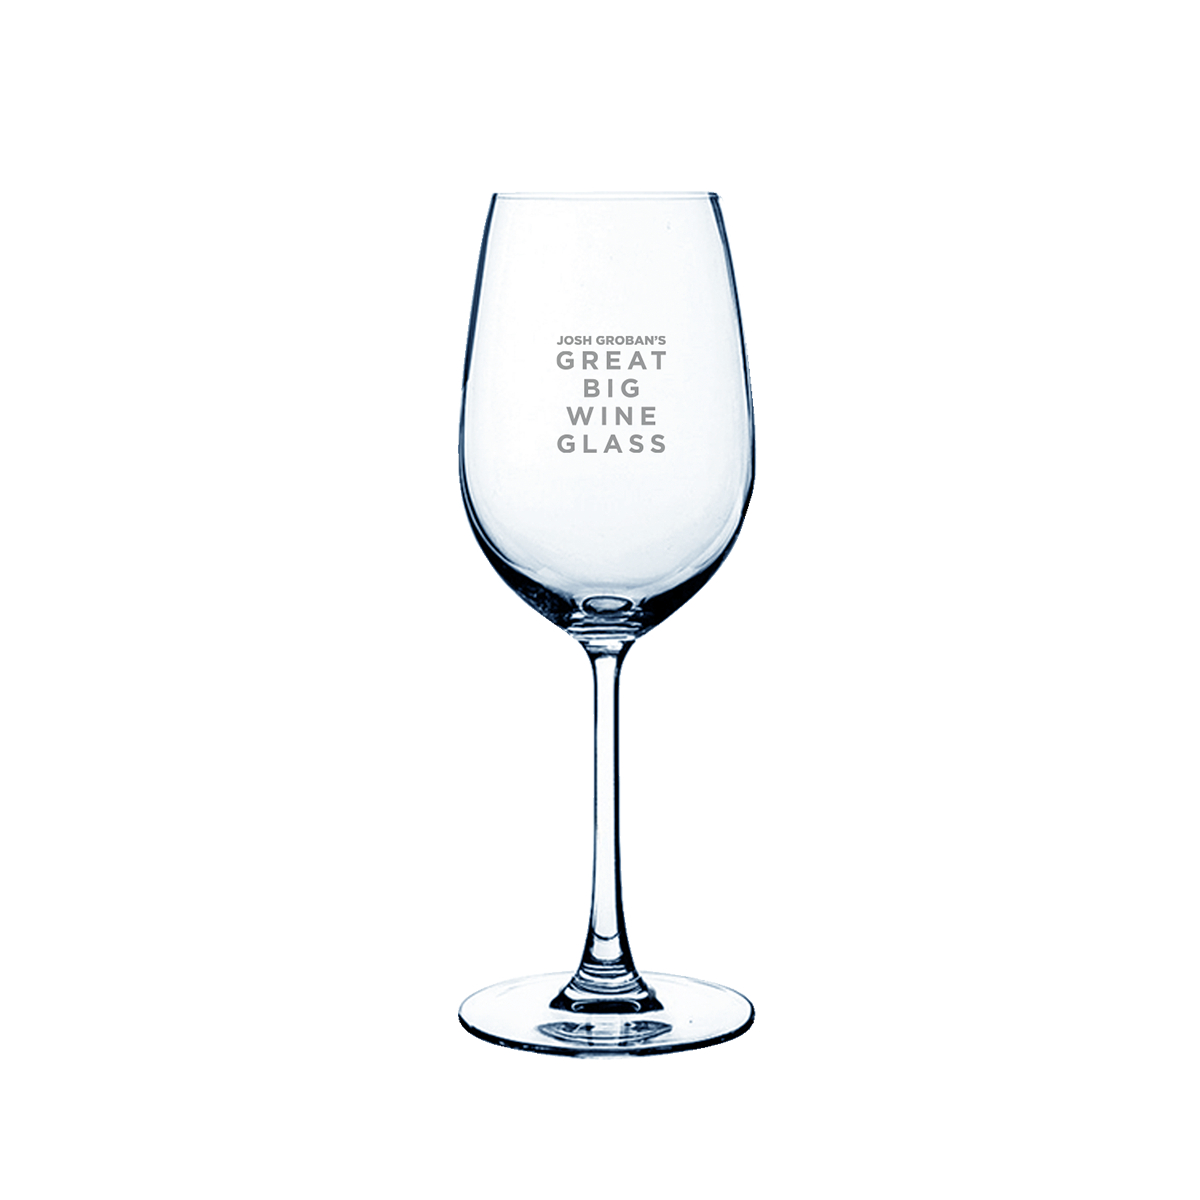 Josh Groban's Great Big Wine Glass